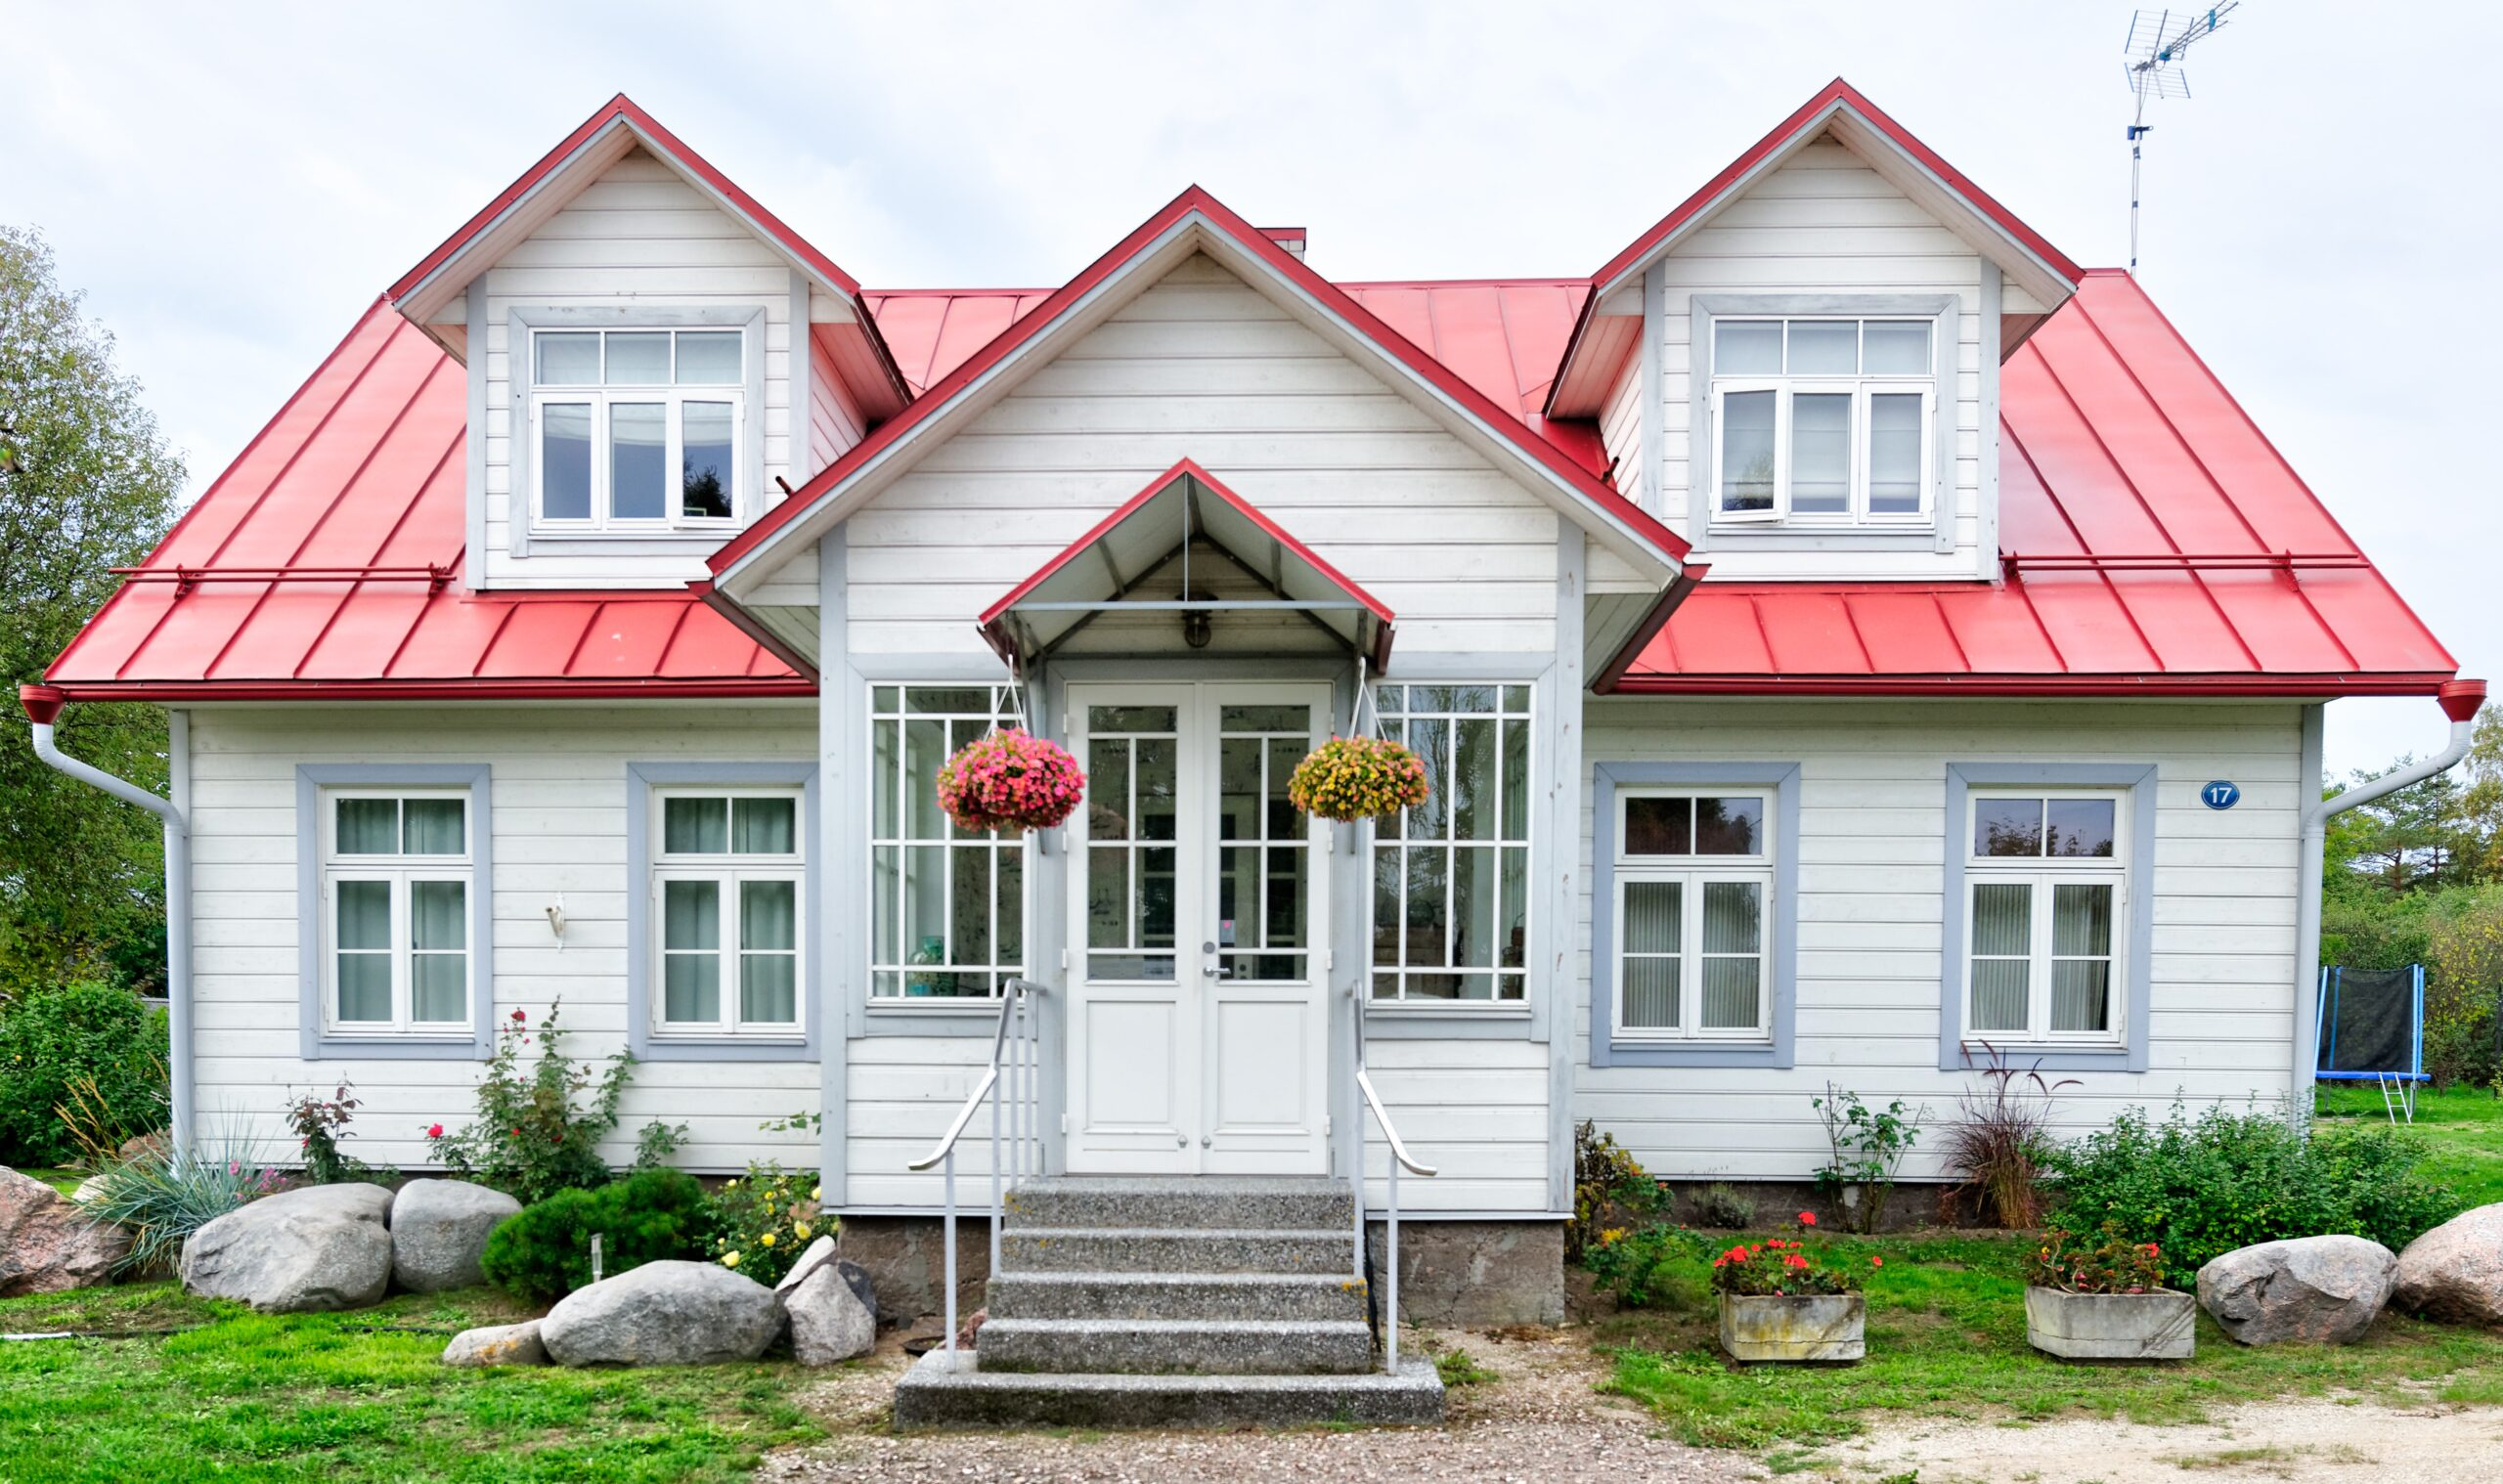 Pros and Cons of a Property Open Day